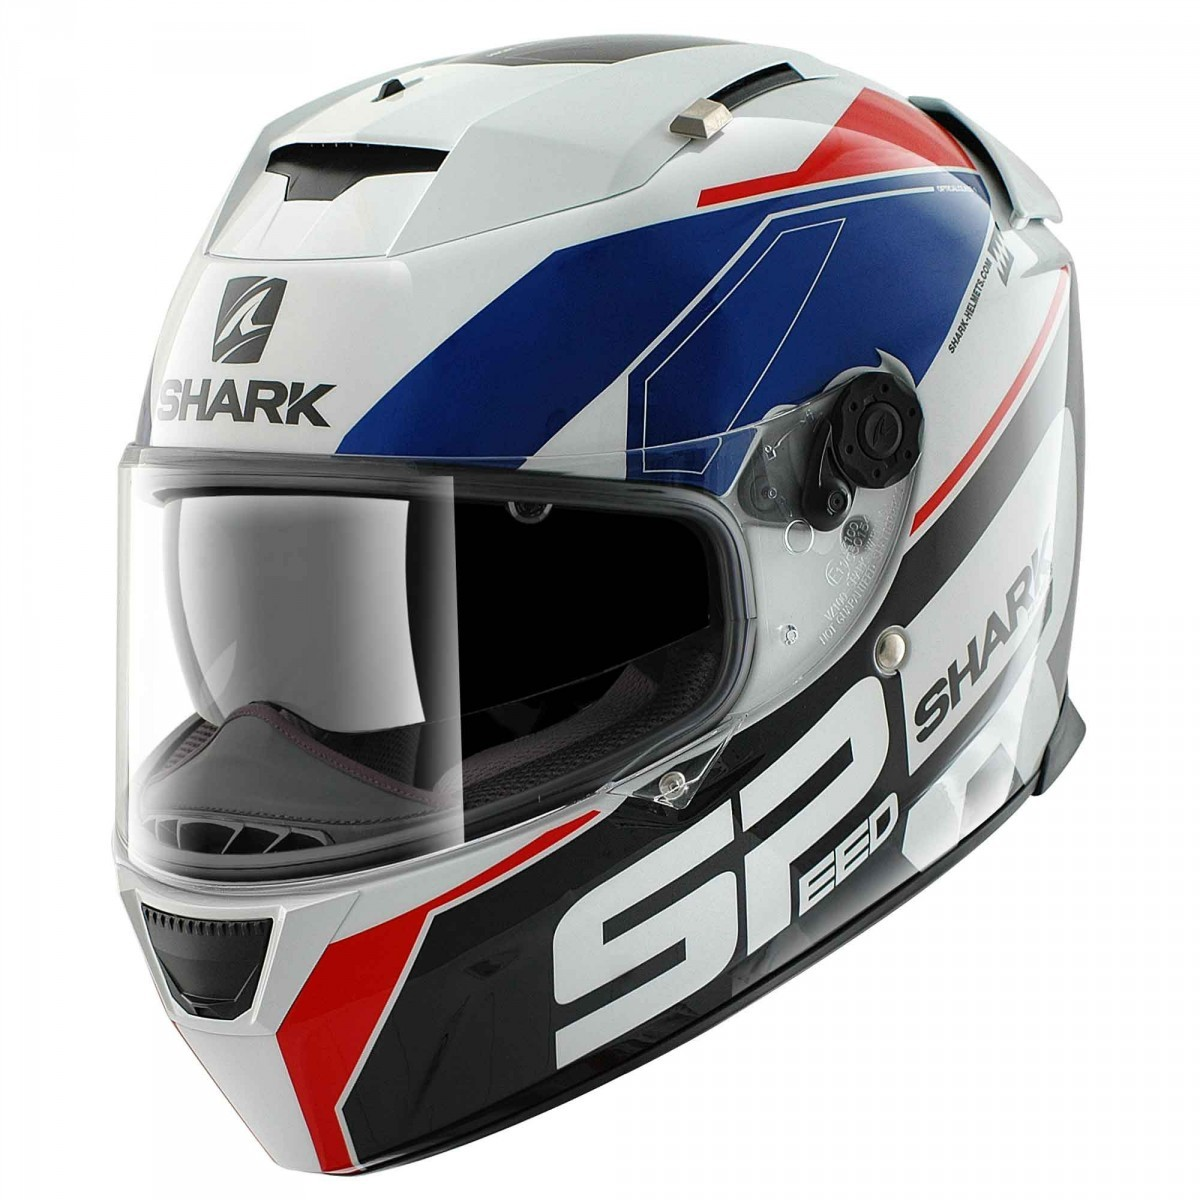 capacete shark speed r 2 sauer ii wbr nova suzuki. Black Bedroom Furniture Sets. Home Design Ideas